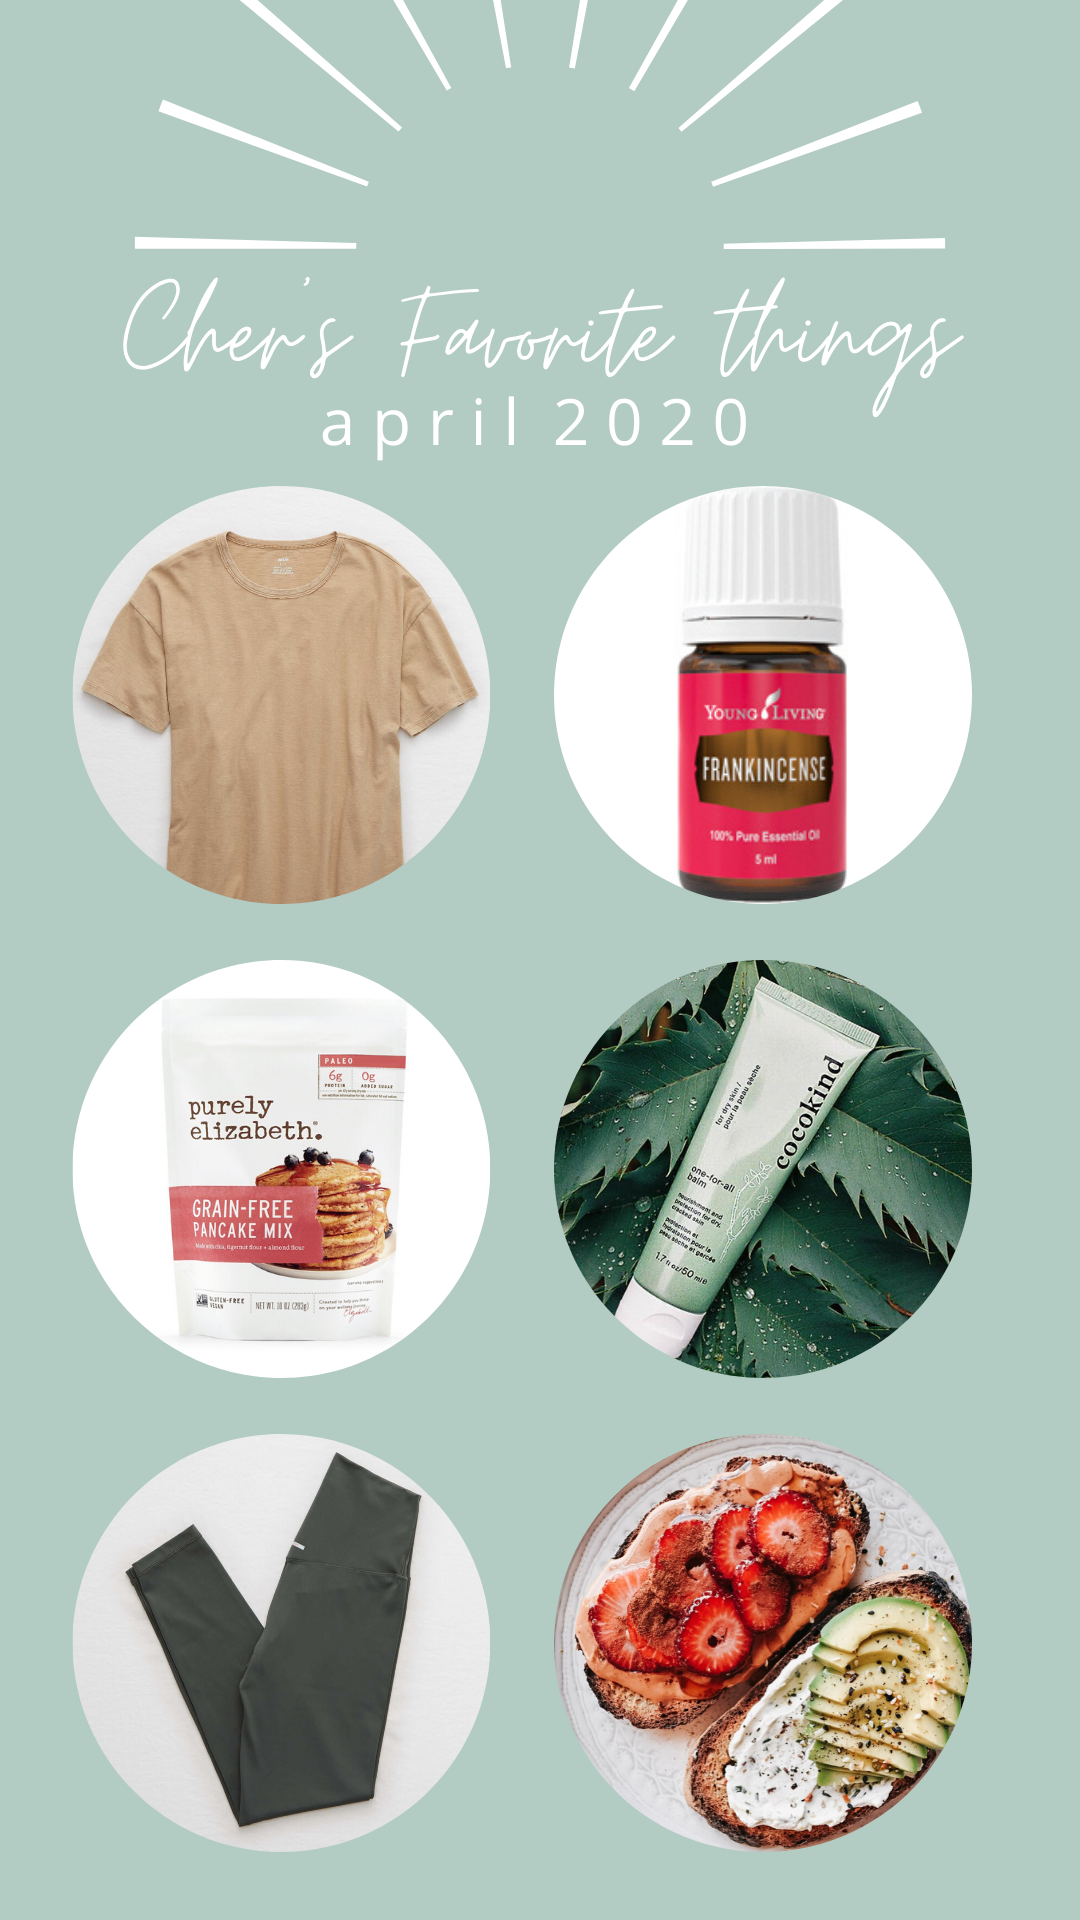 Cher's favorite things- April 2020